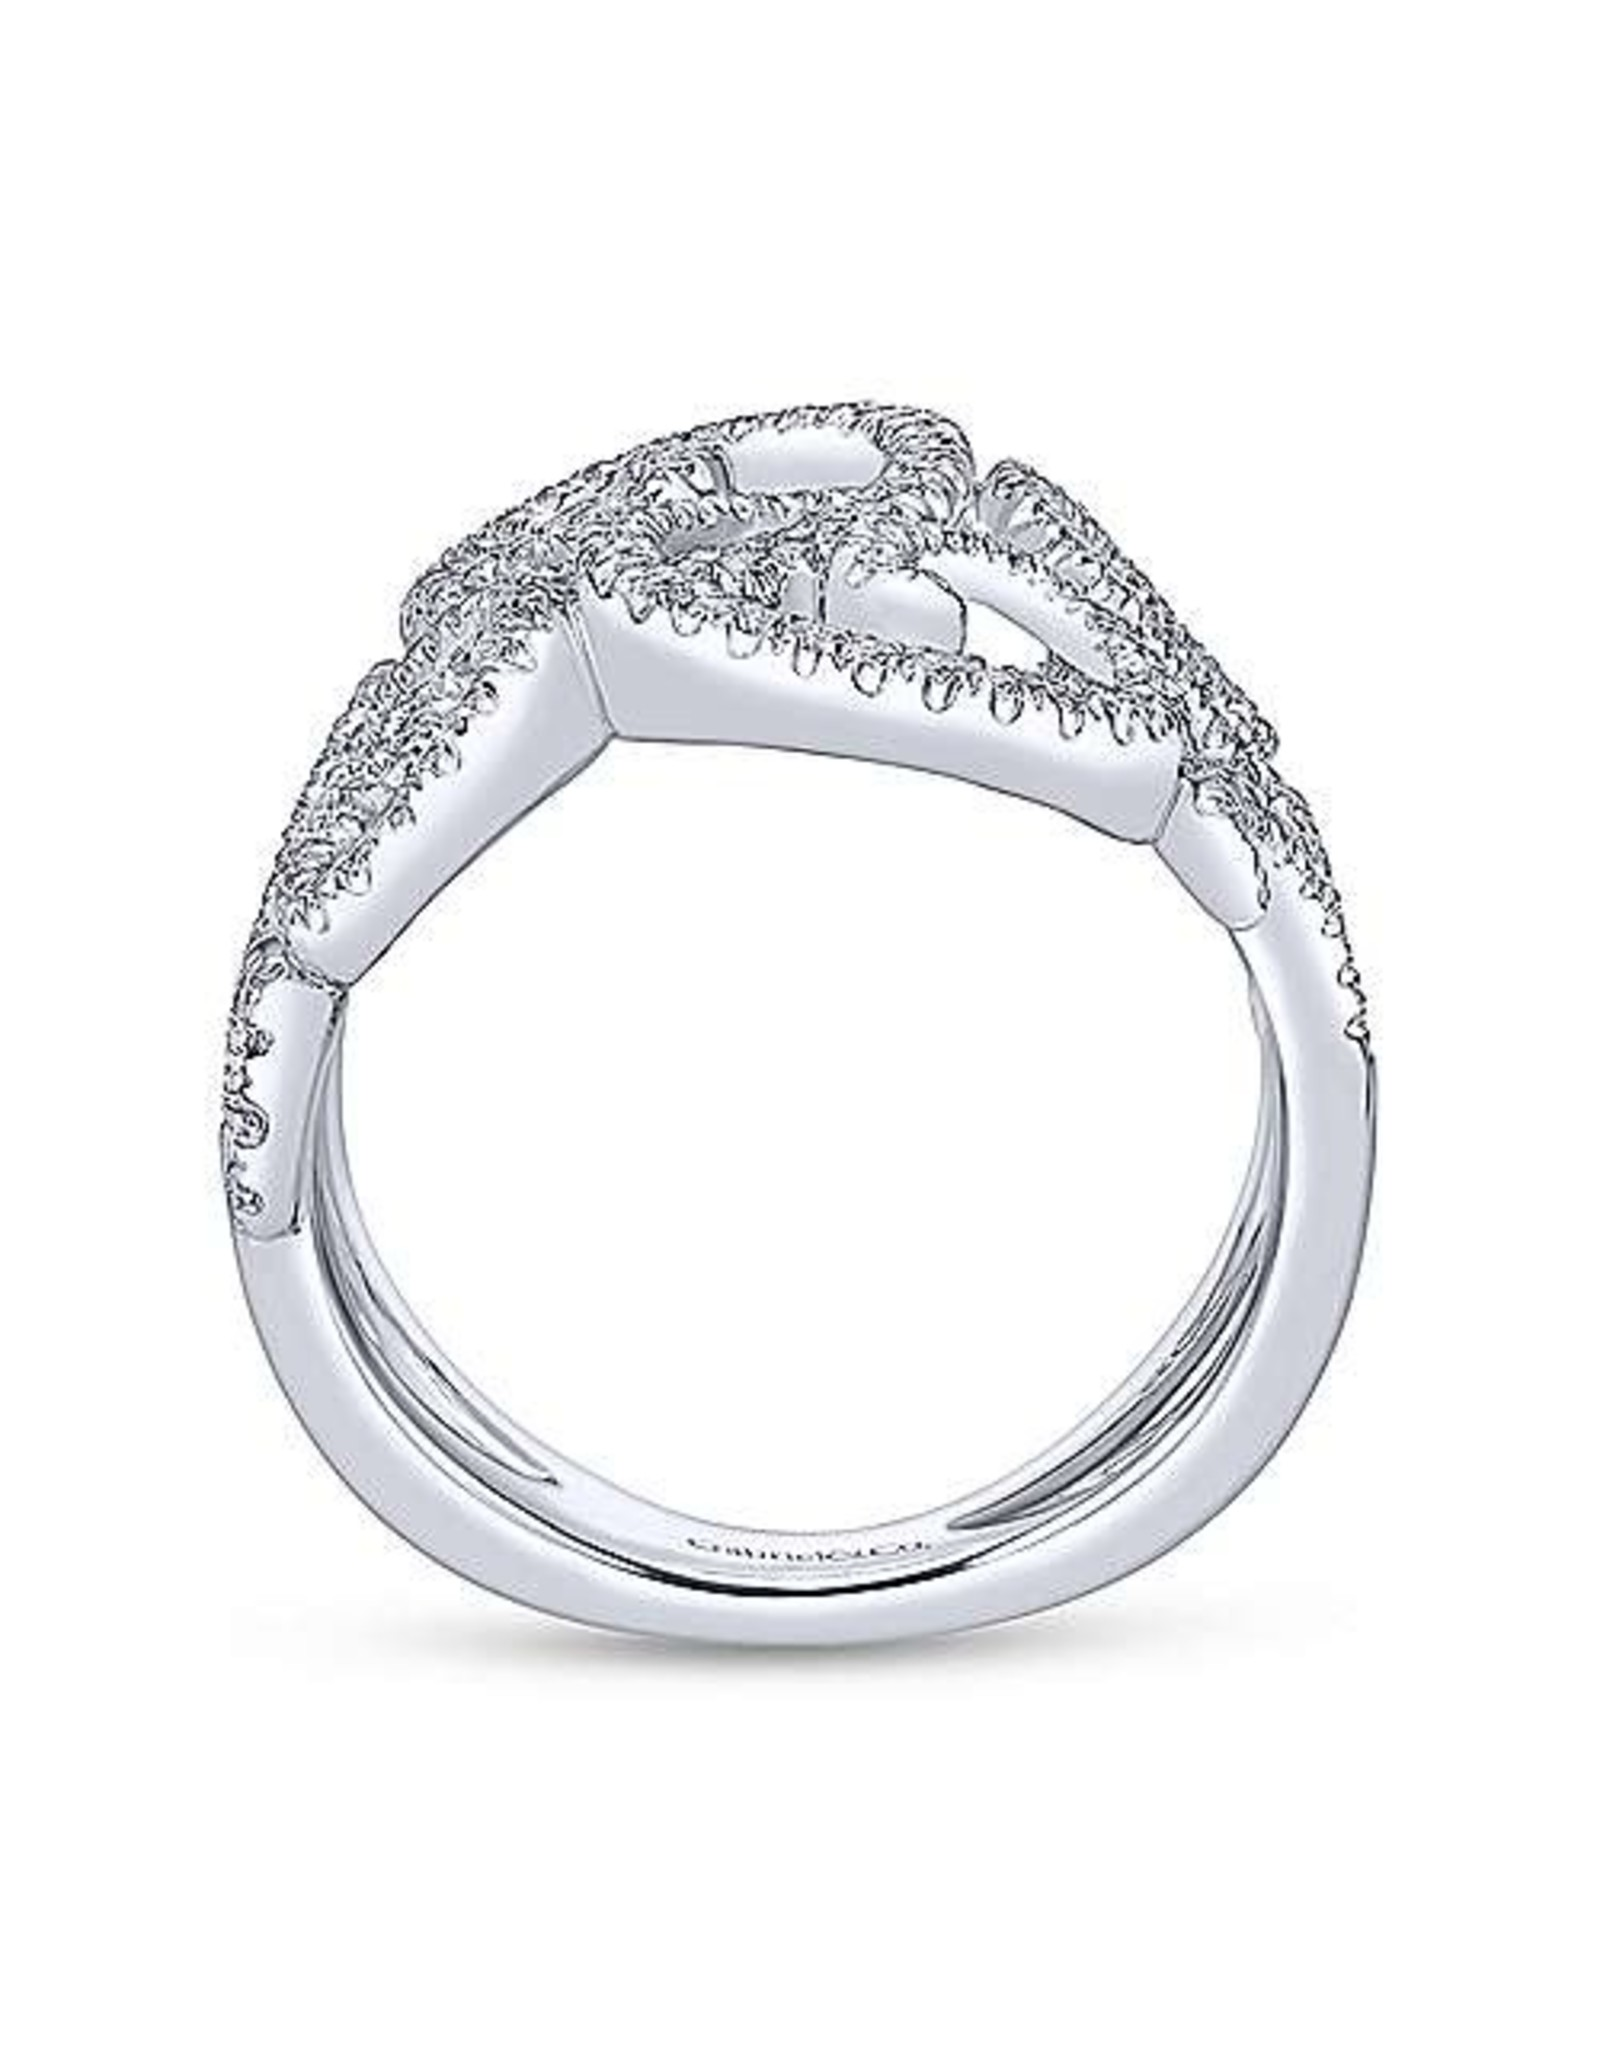 14K White Gold Pave Diamond Lace Ring, D: 0.64ct